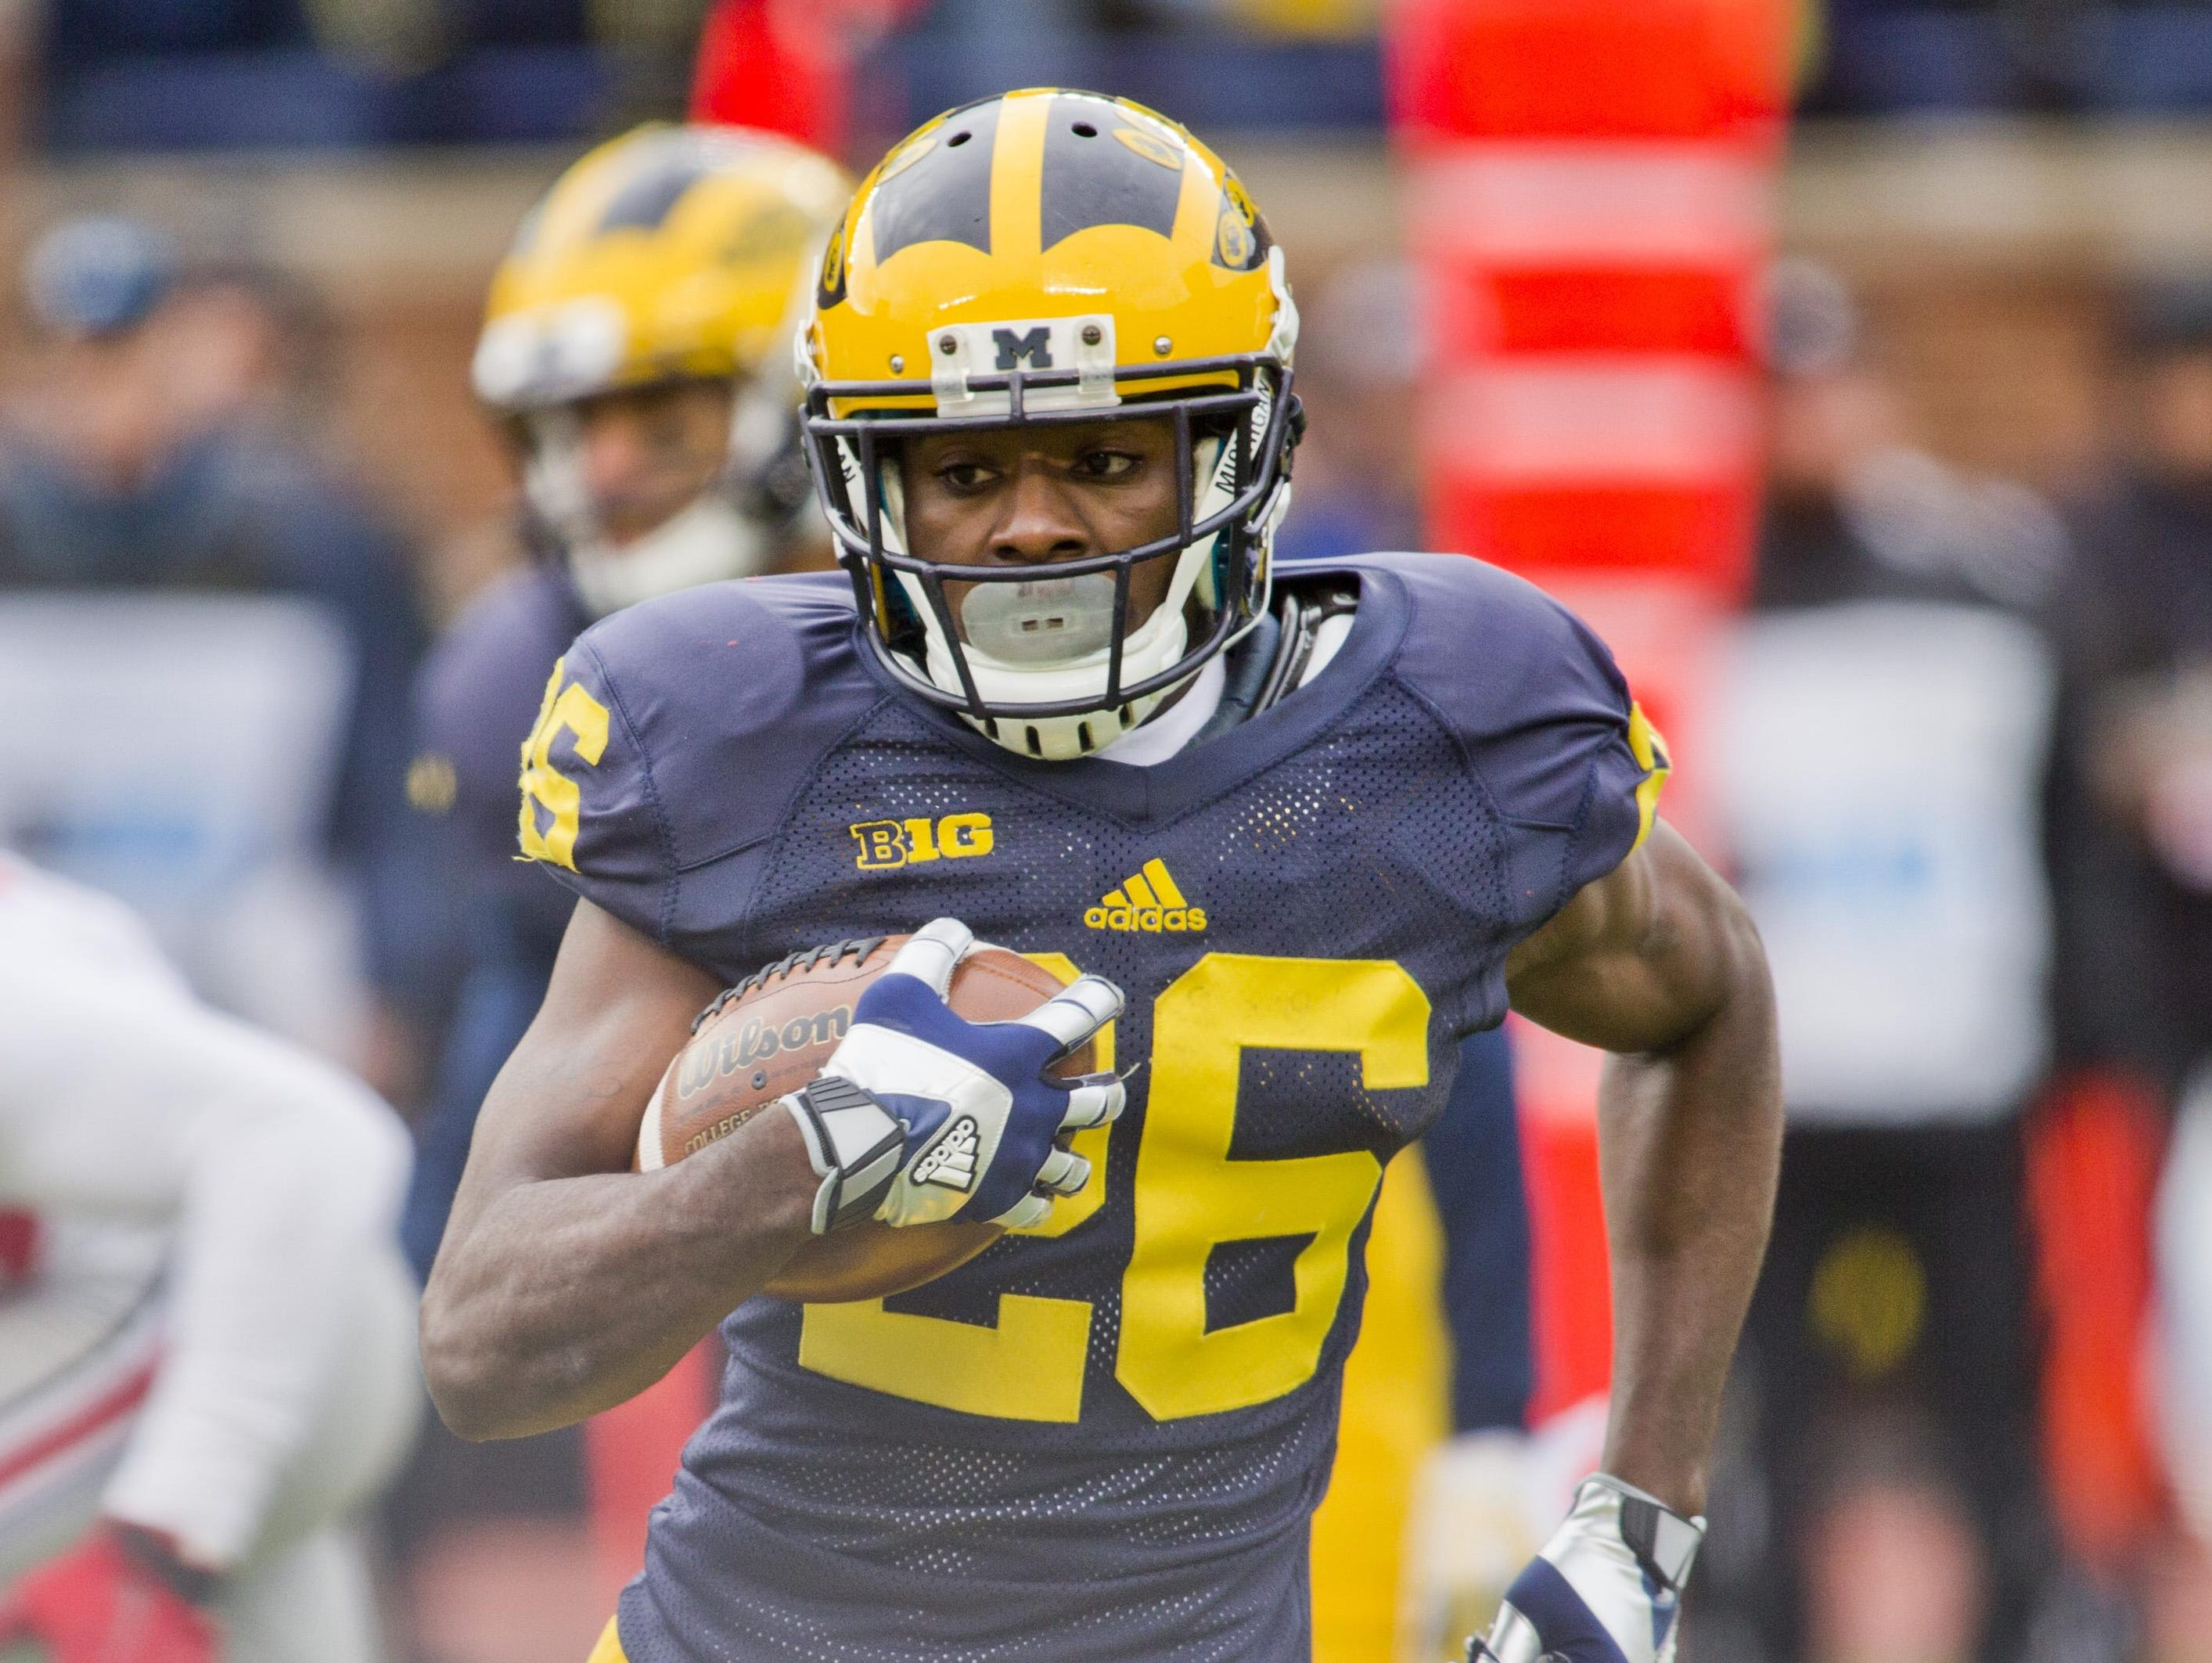 U-M defensive back Jourdan Lewis is rated among the best in the U.S.